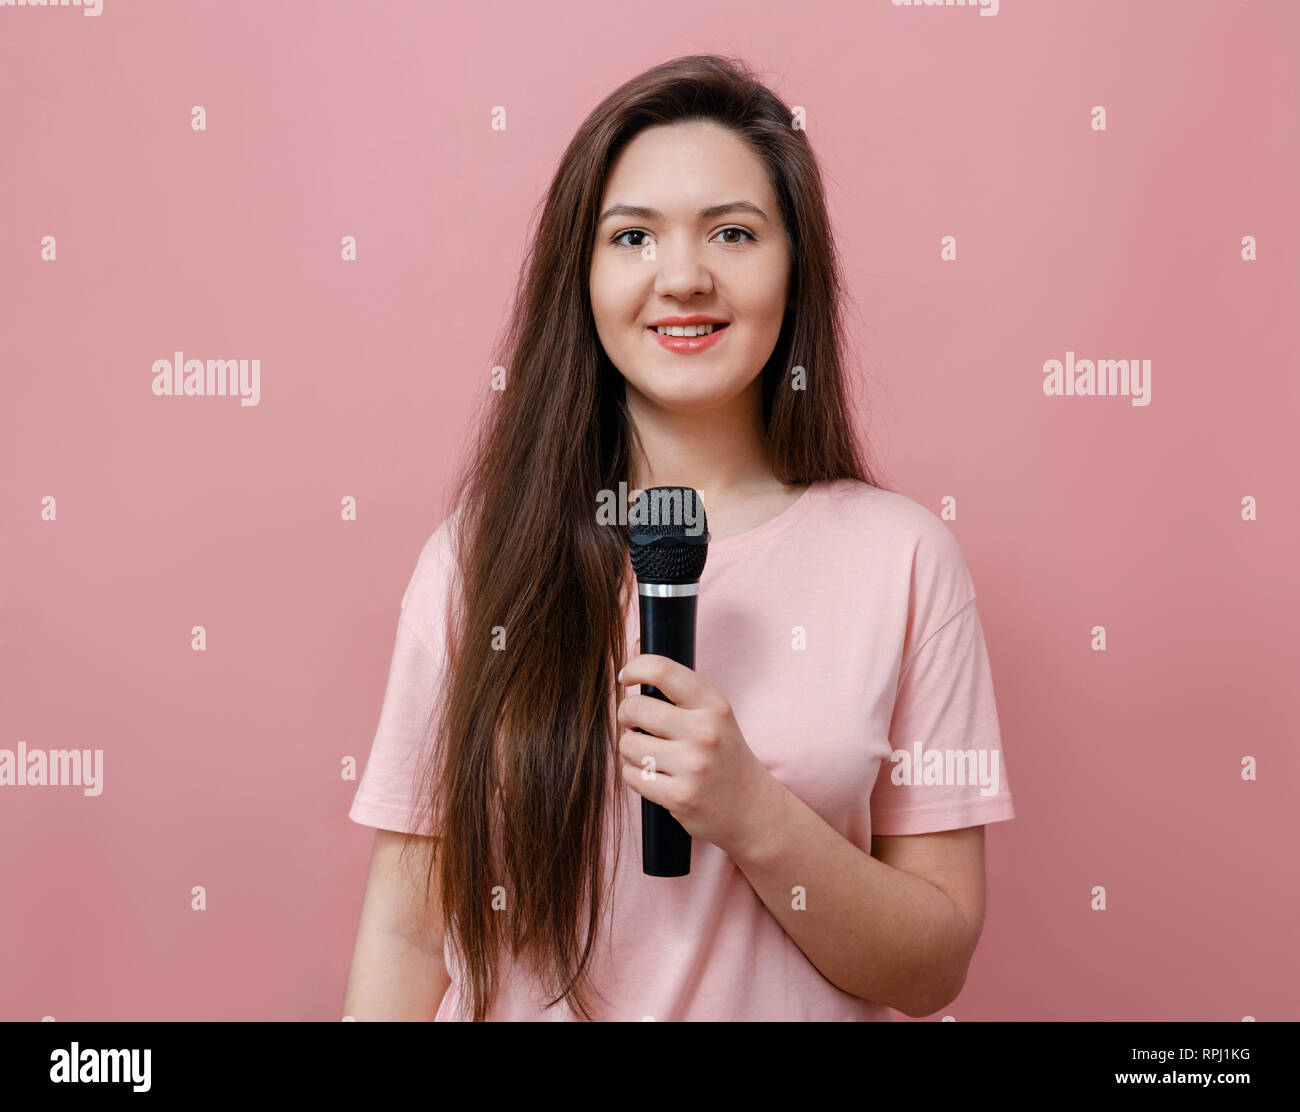 young woman with microphone in hand  on pink background - Stock Image